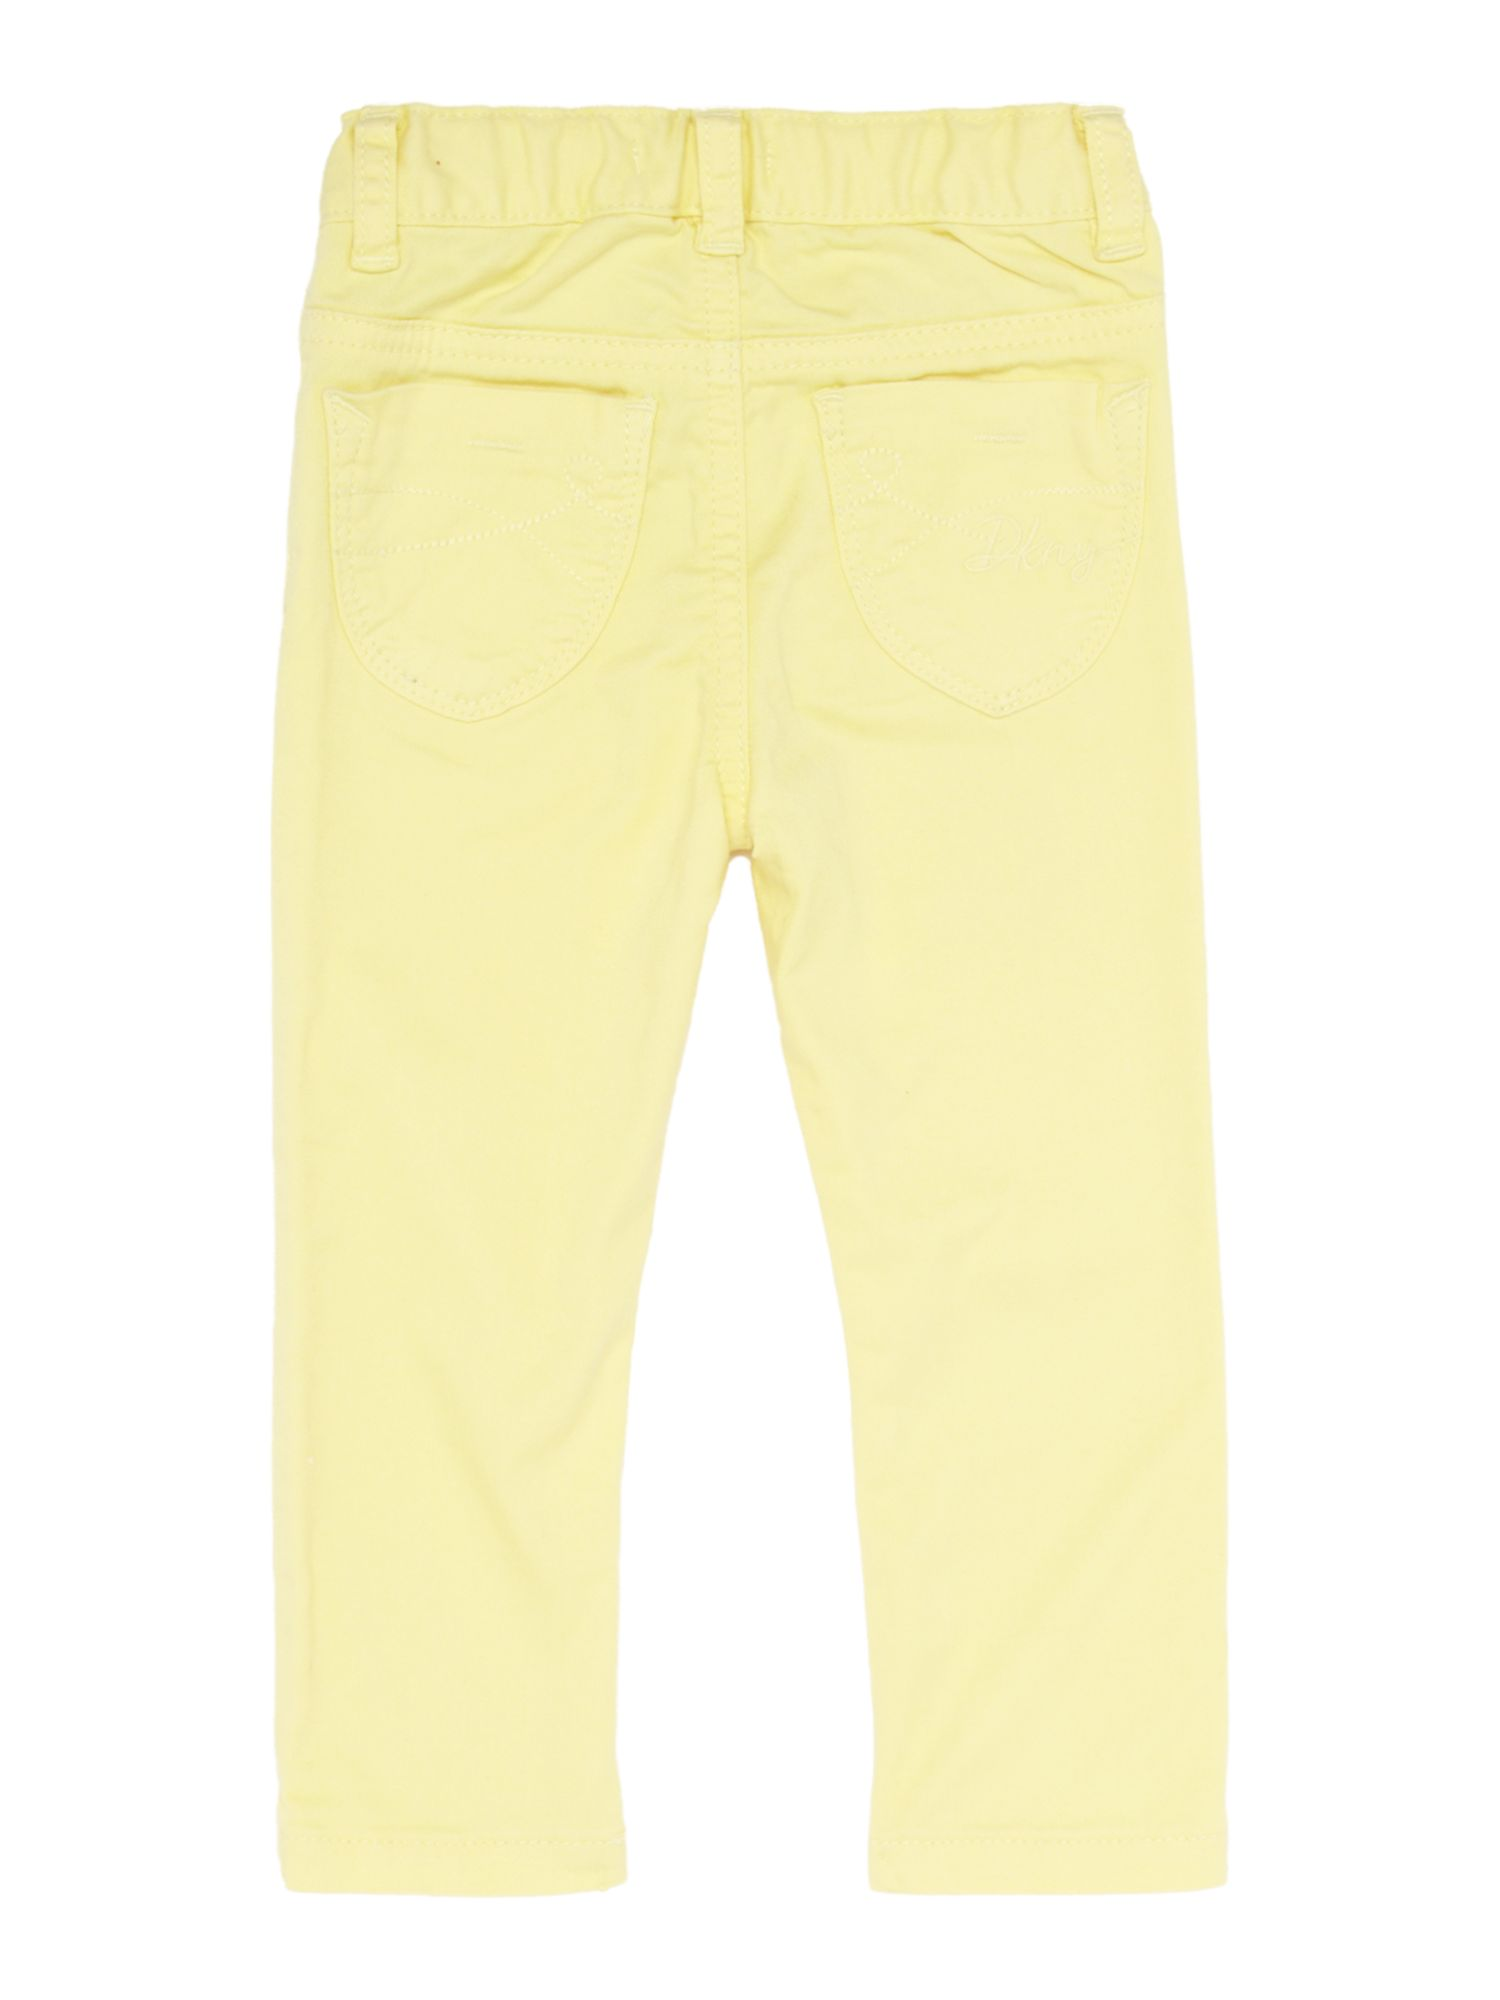 Girls 4 pocket twill trousers